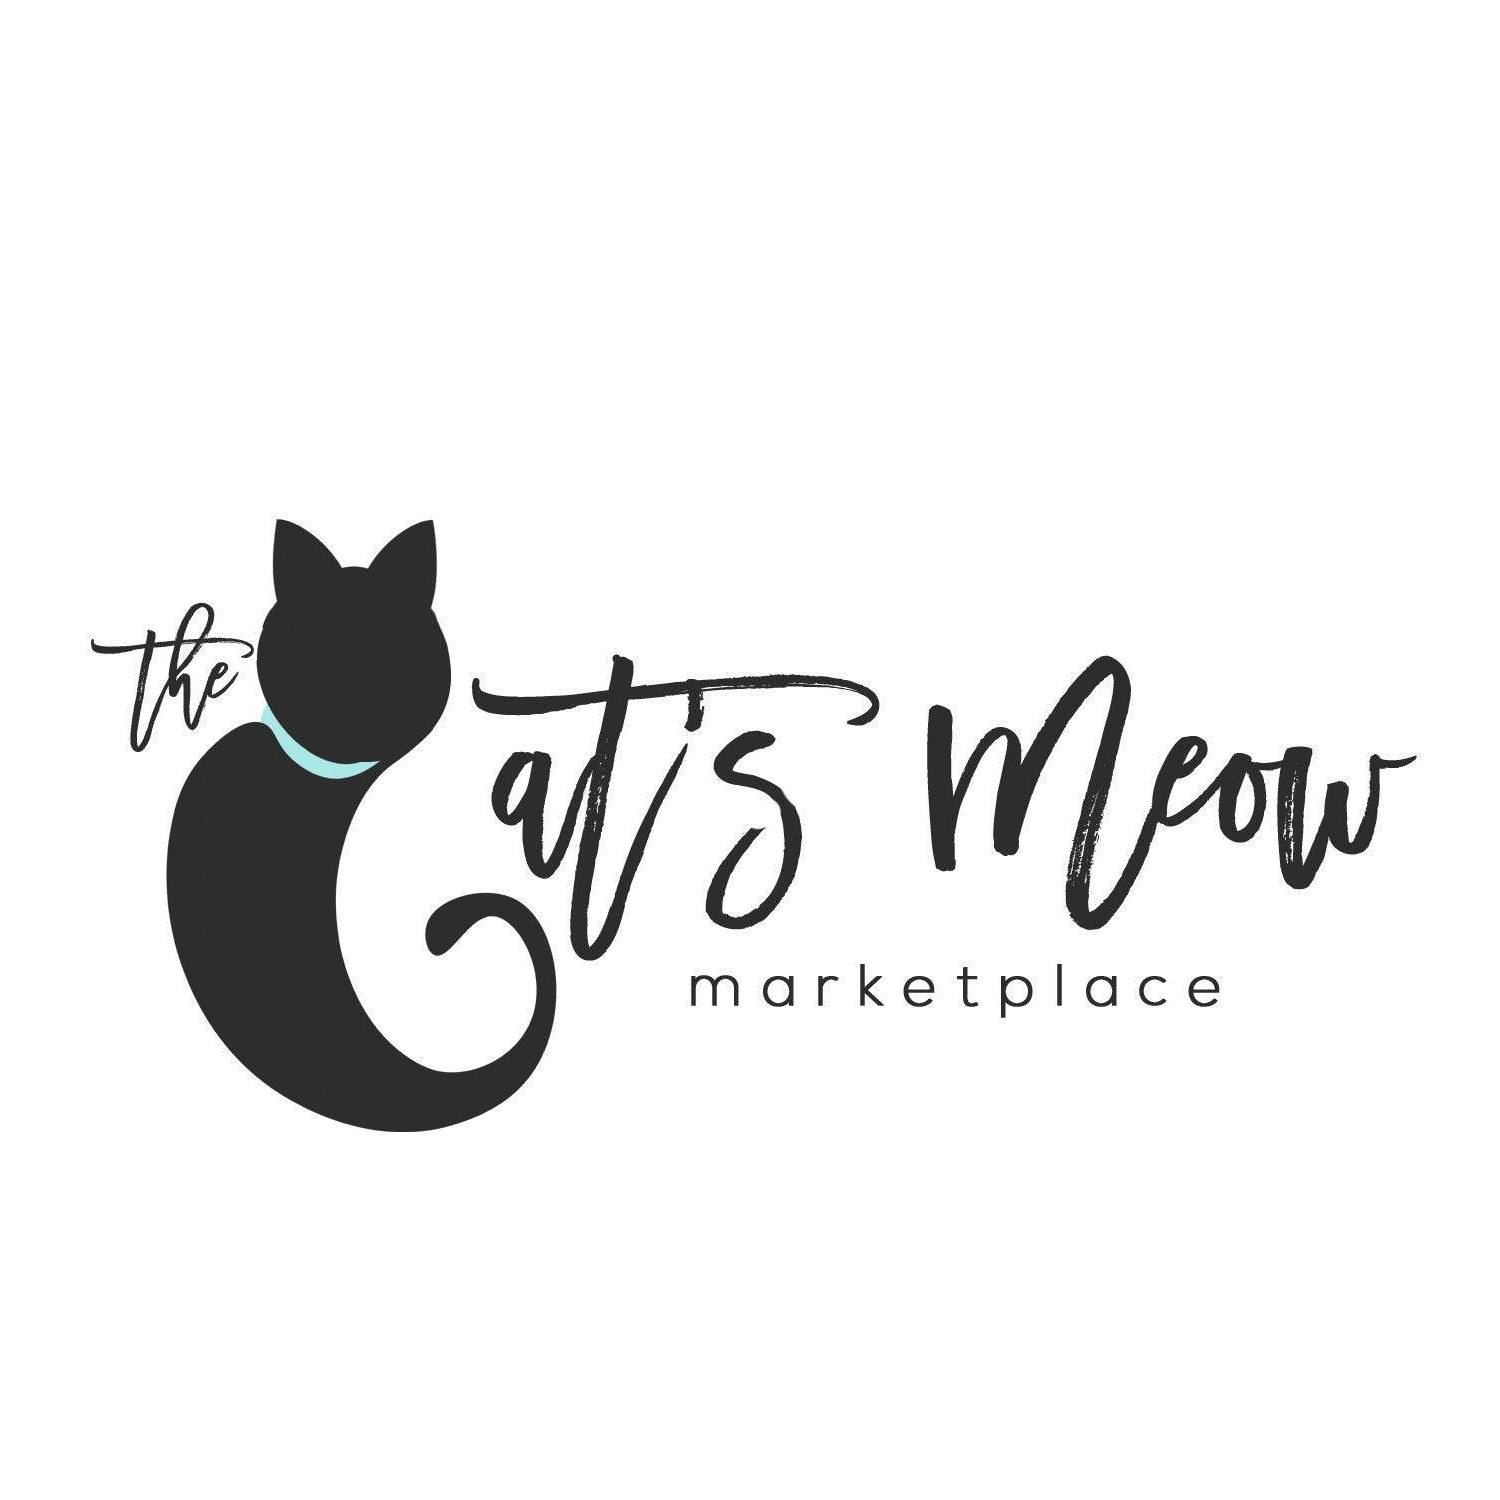 The Cat's Meow Marketplace